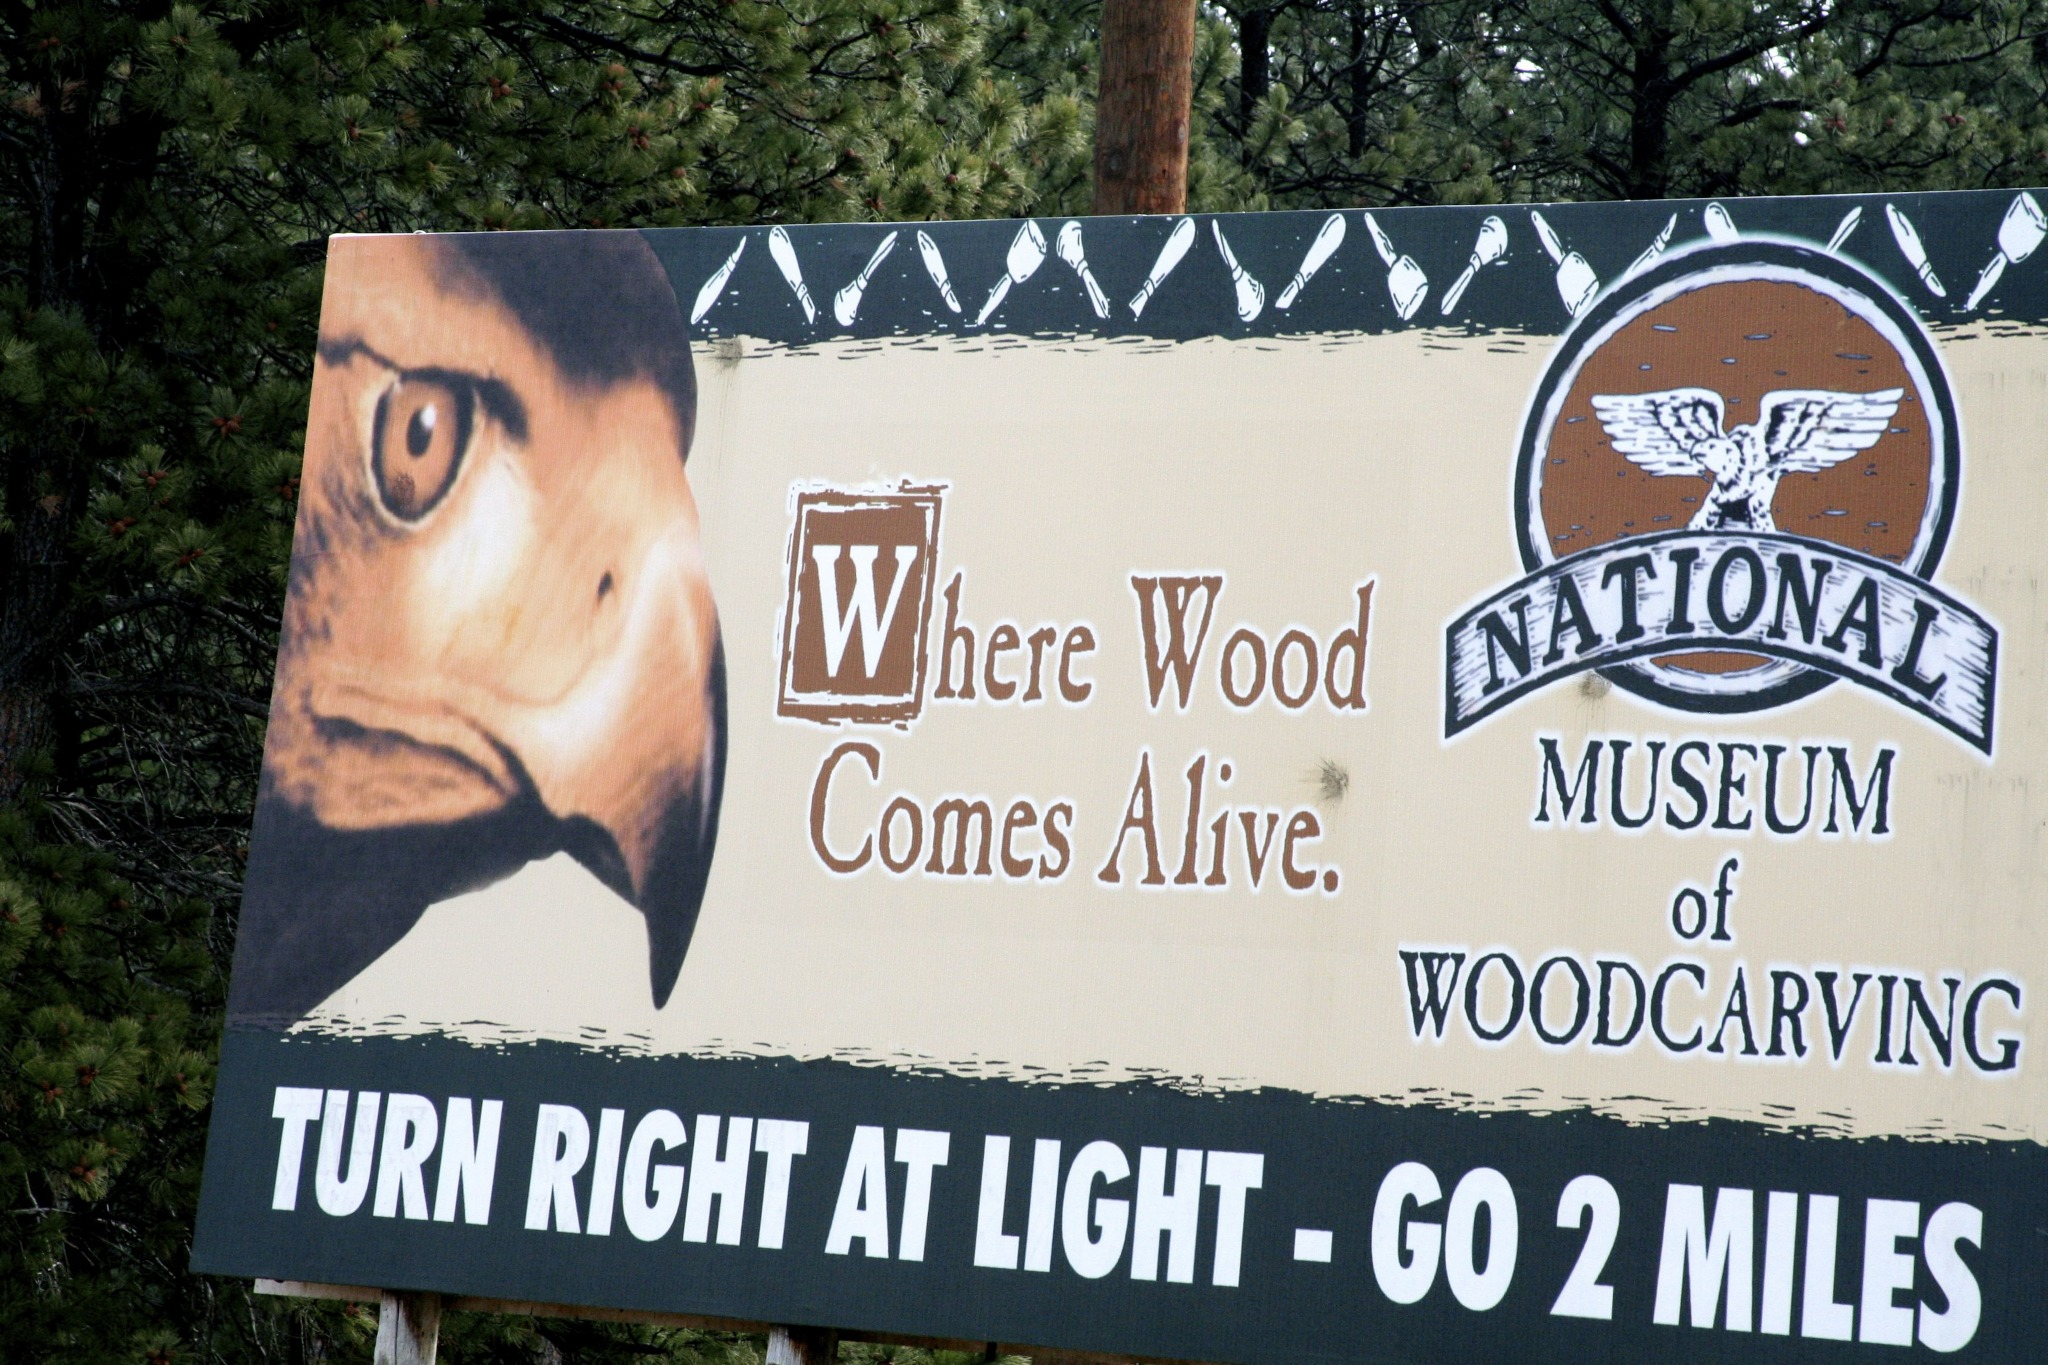 Actually, the place where wood comes alive is the forest. You know, the one you cut down to carve your inanimate museum showpieces.